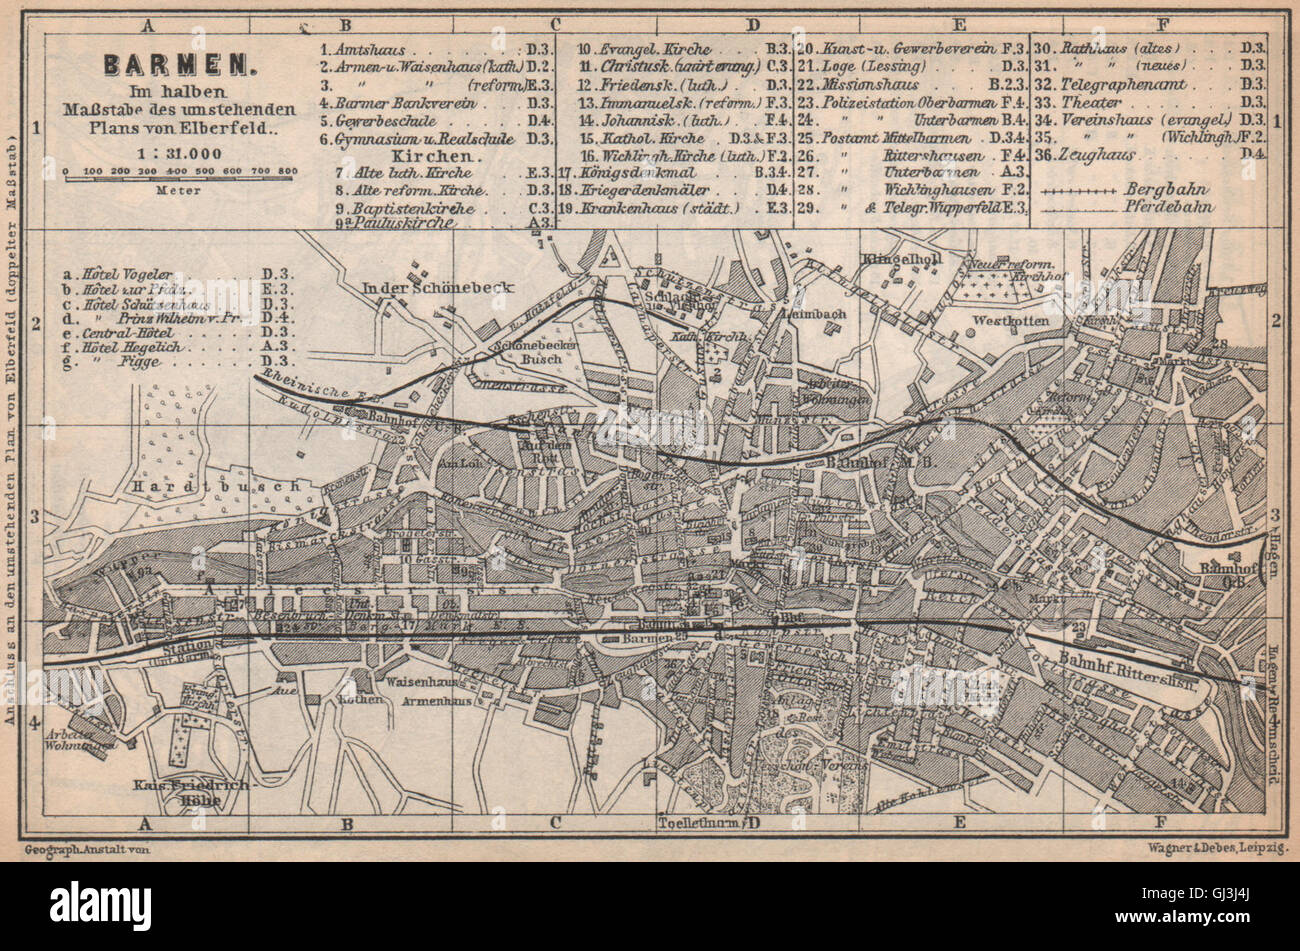 ELBERFELD WUPPERTAL  vintage town city stadtplan Germany karte 1926 old map